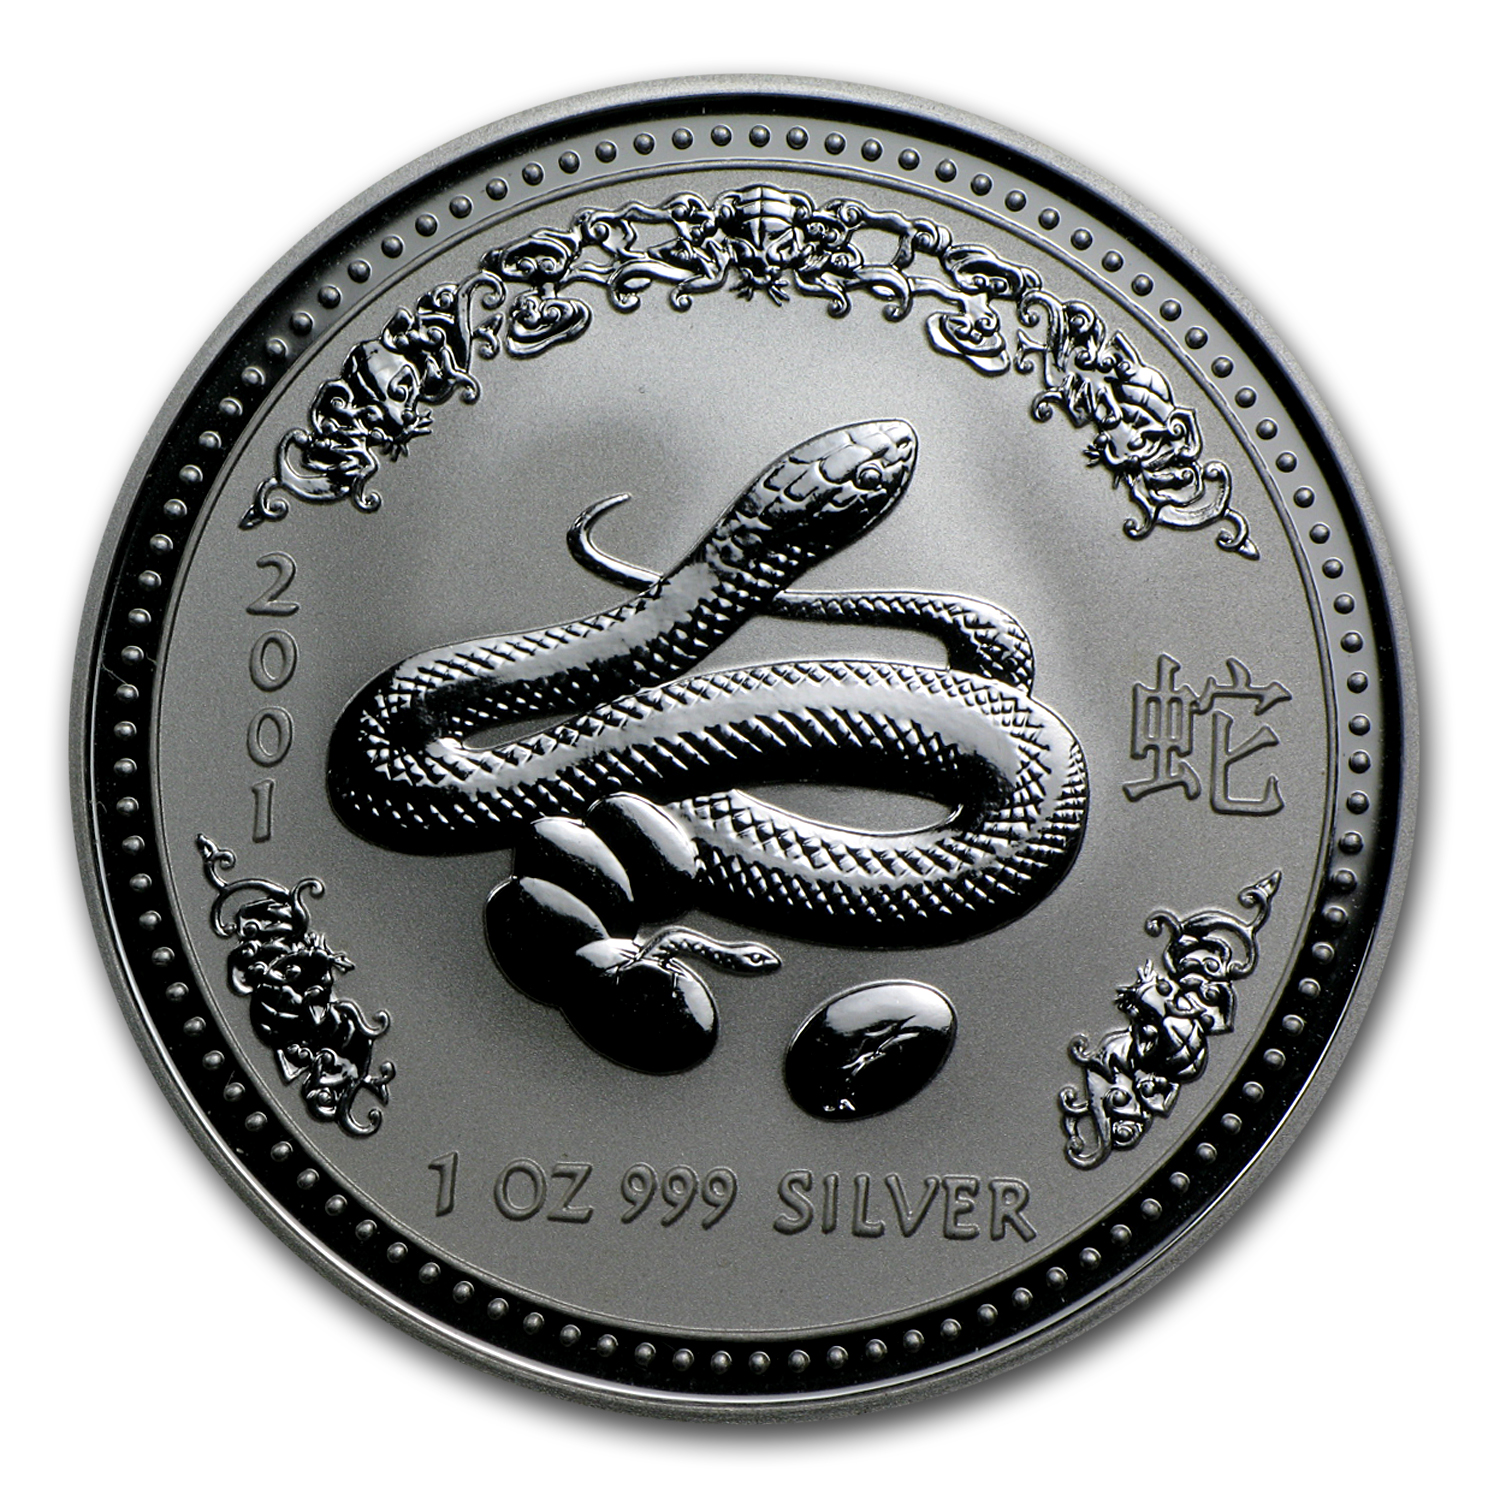 2001 1 oz Silver Lunar Year of the Snake (Light Abrasions)